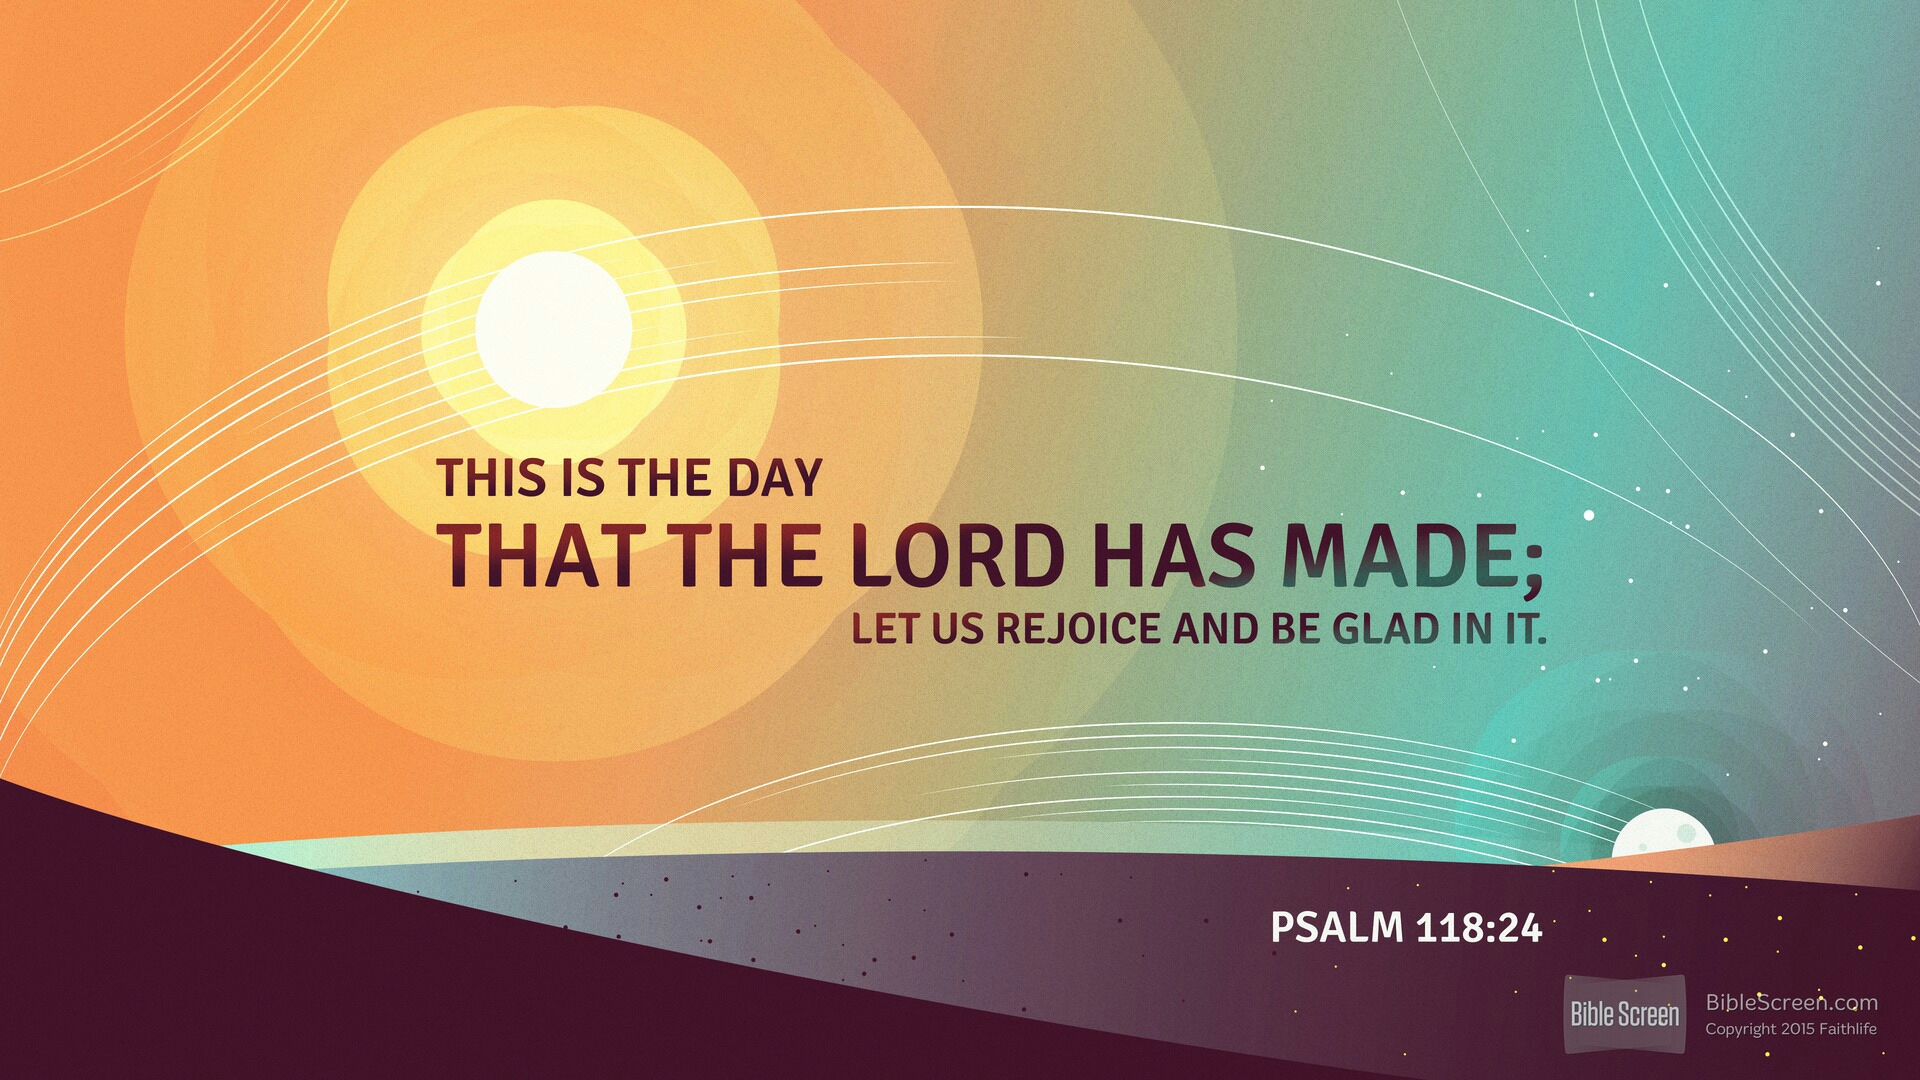 Today Rejoice And Be Glad